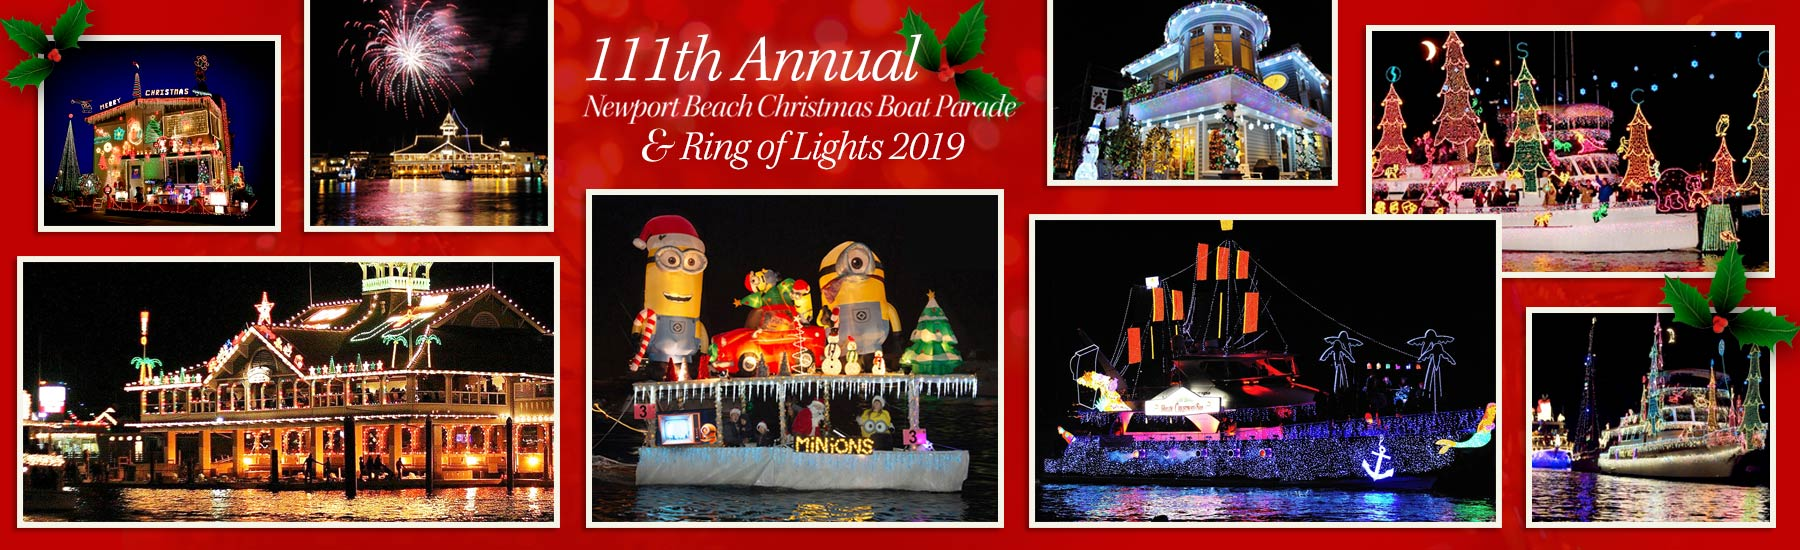 Newport Beach Christmas Boat Parade 2019 2019 Newport Beach Boat Parade Website   Company Christmas Event